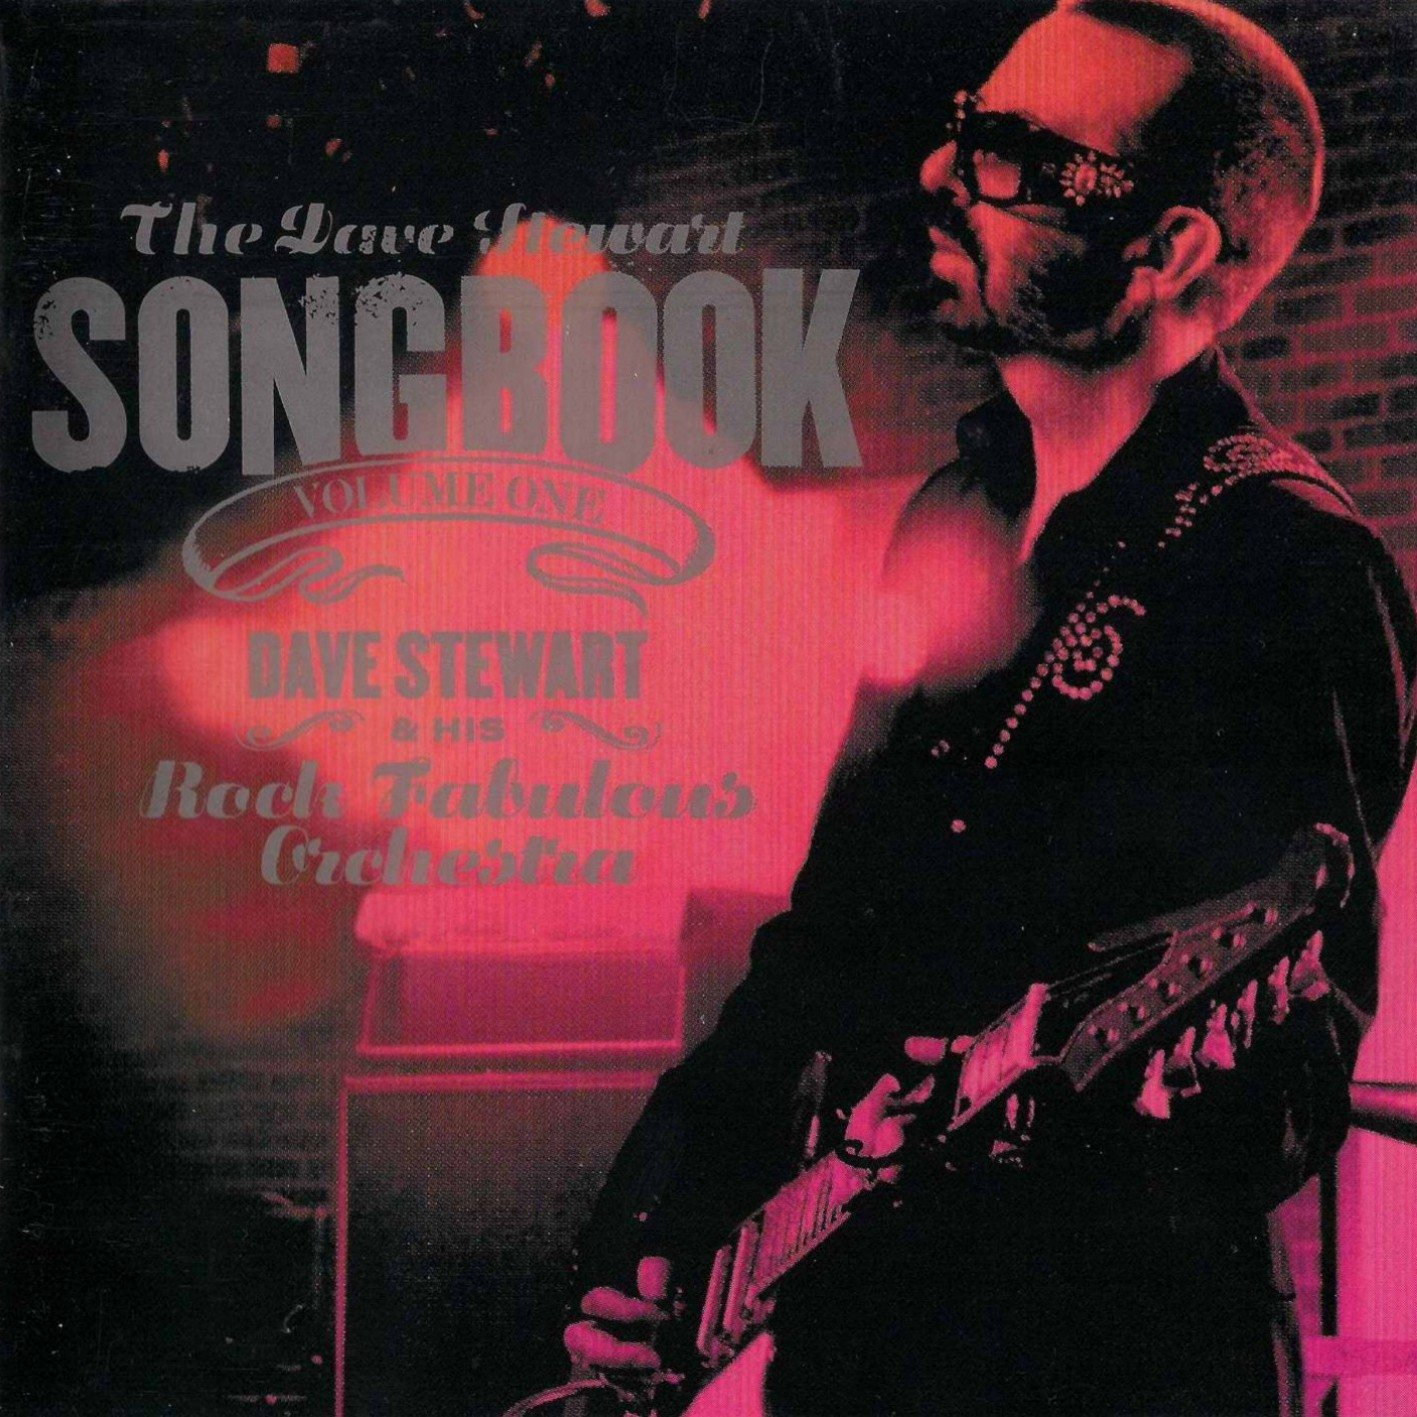 6 years ago today Dave Stewart released the Dave Stewart Songbook double CD and 300 page book – 4th August 2008